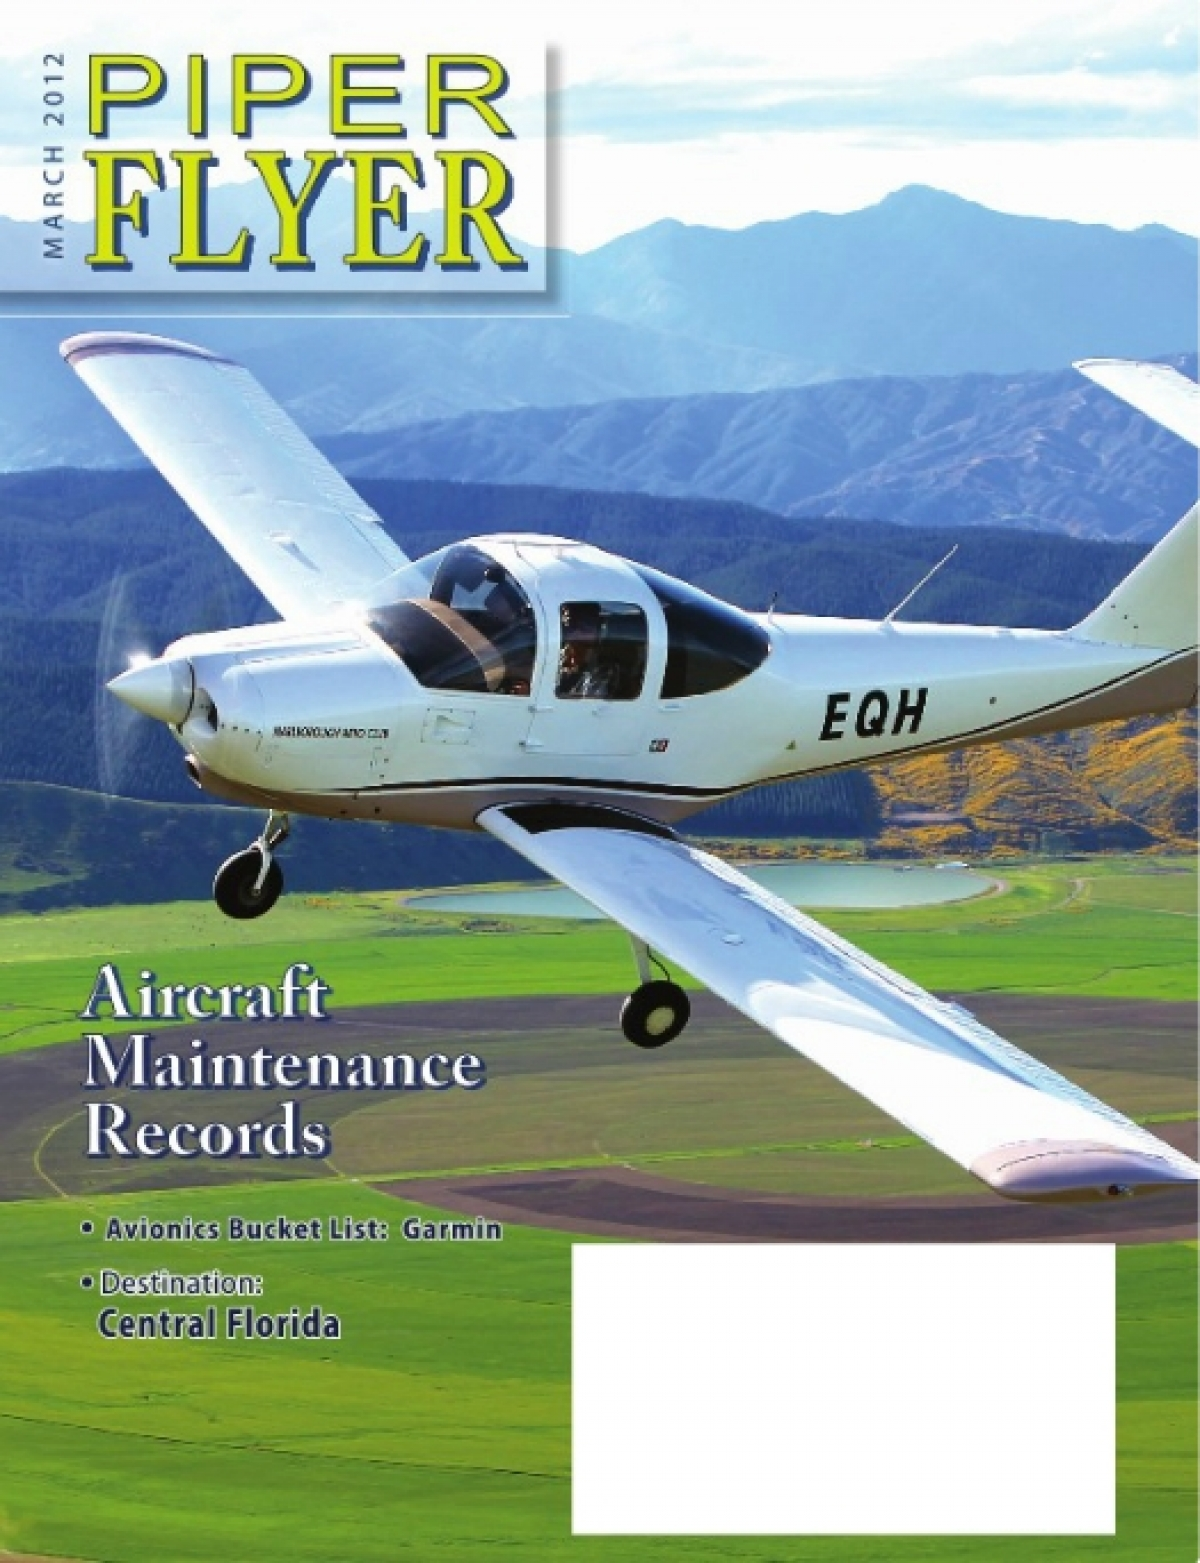 March 2012 Piper Flyer magazine